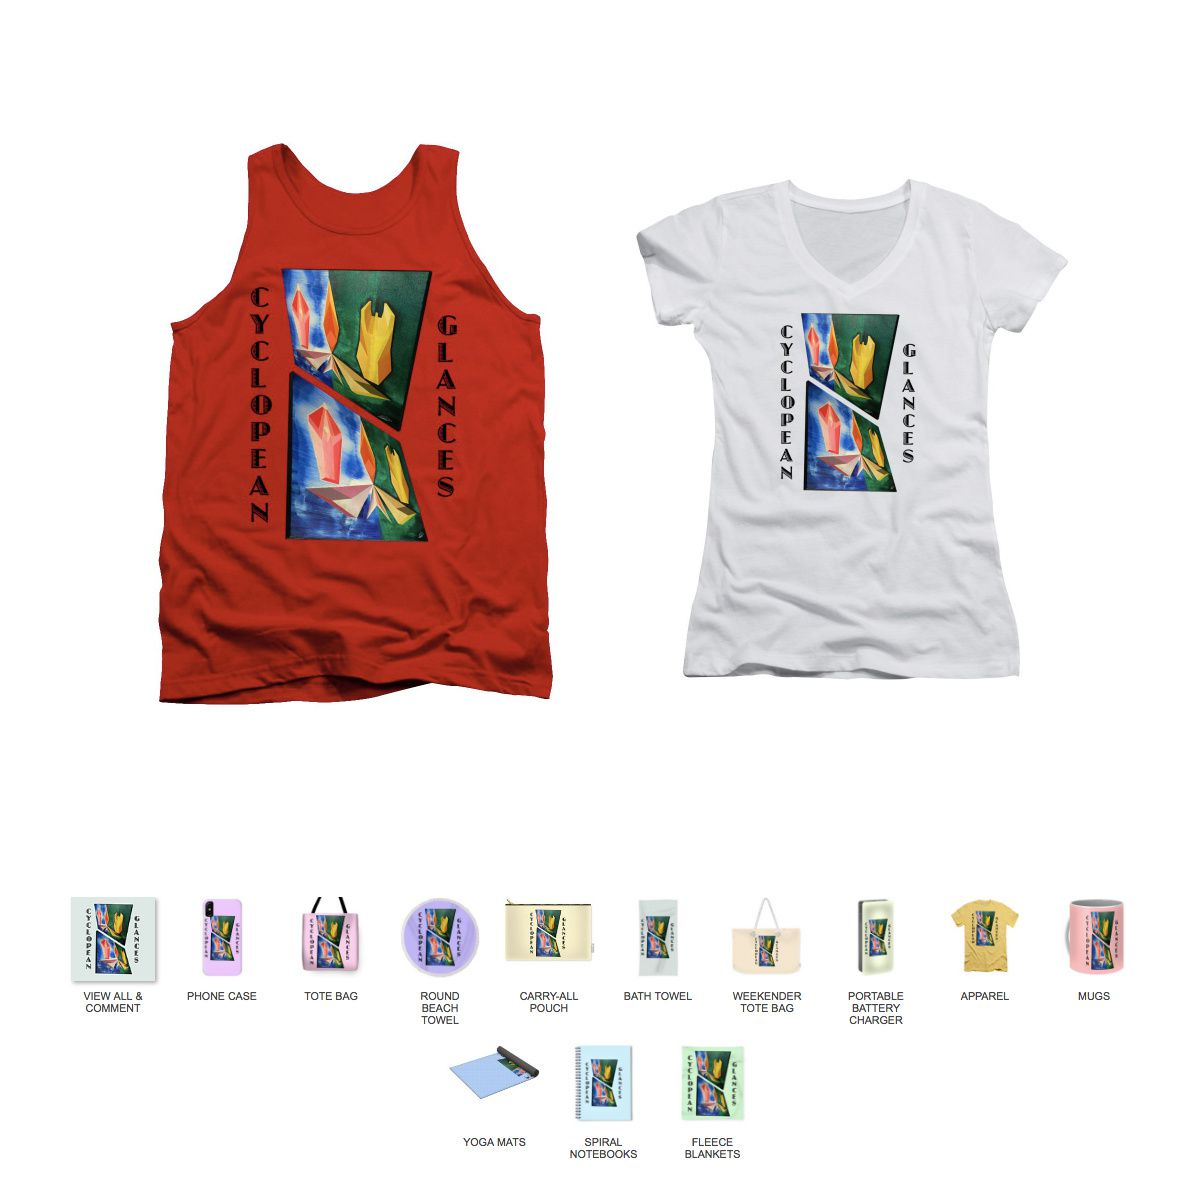 Cyclopean Glances Infinite-Justice Tank Top, Cyclopean Glances Infini-Justice - Womens's V-Neck (Athletic Fit) and all products.